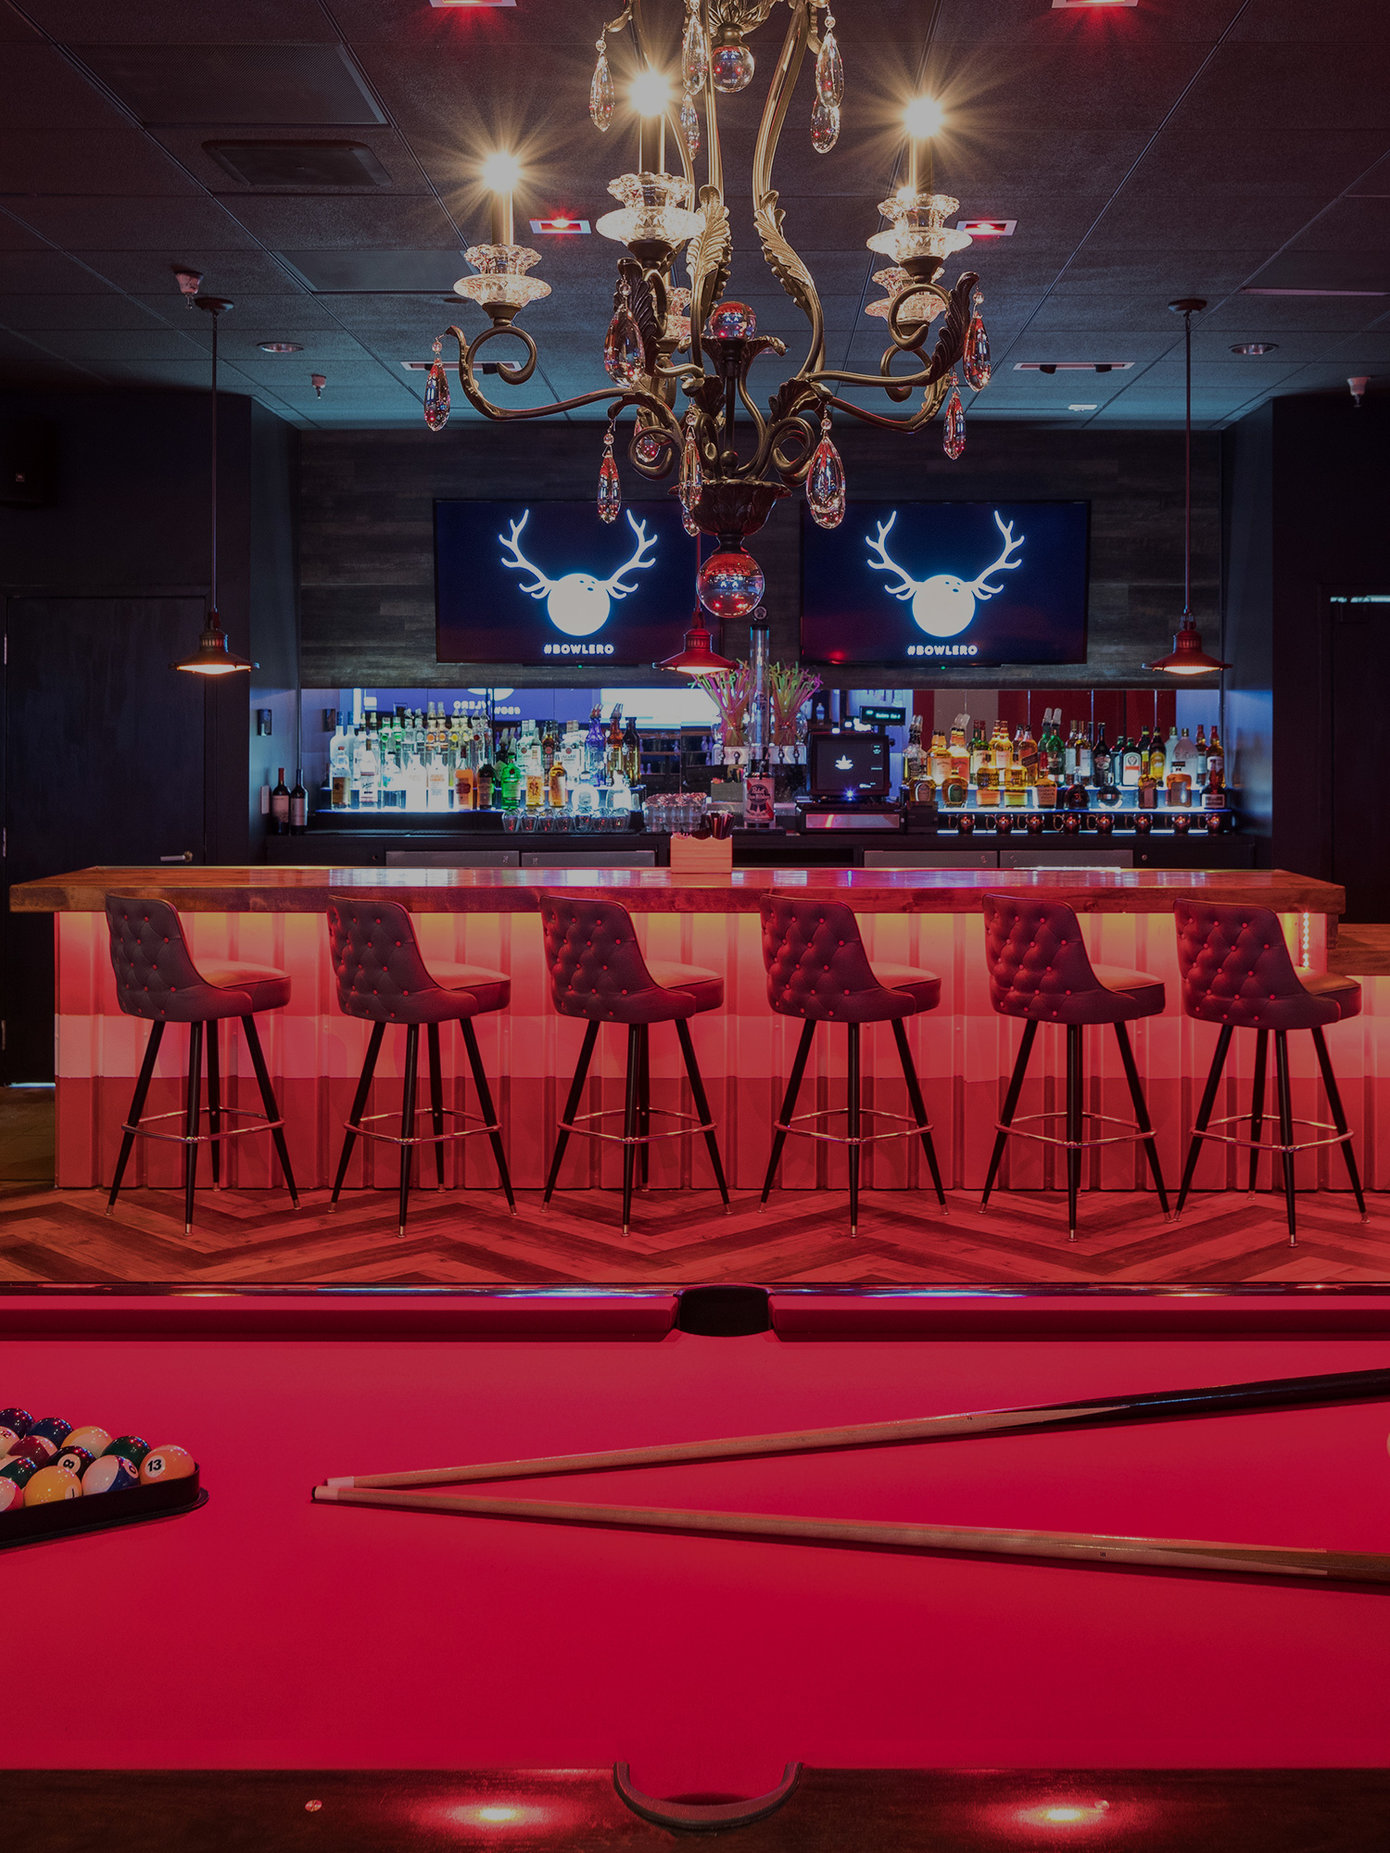 Red billiards tables and a bar